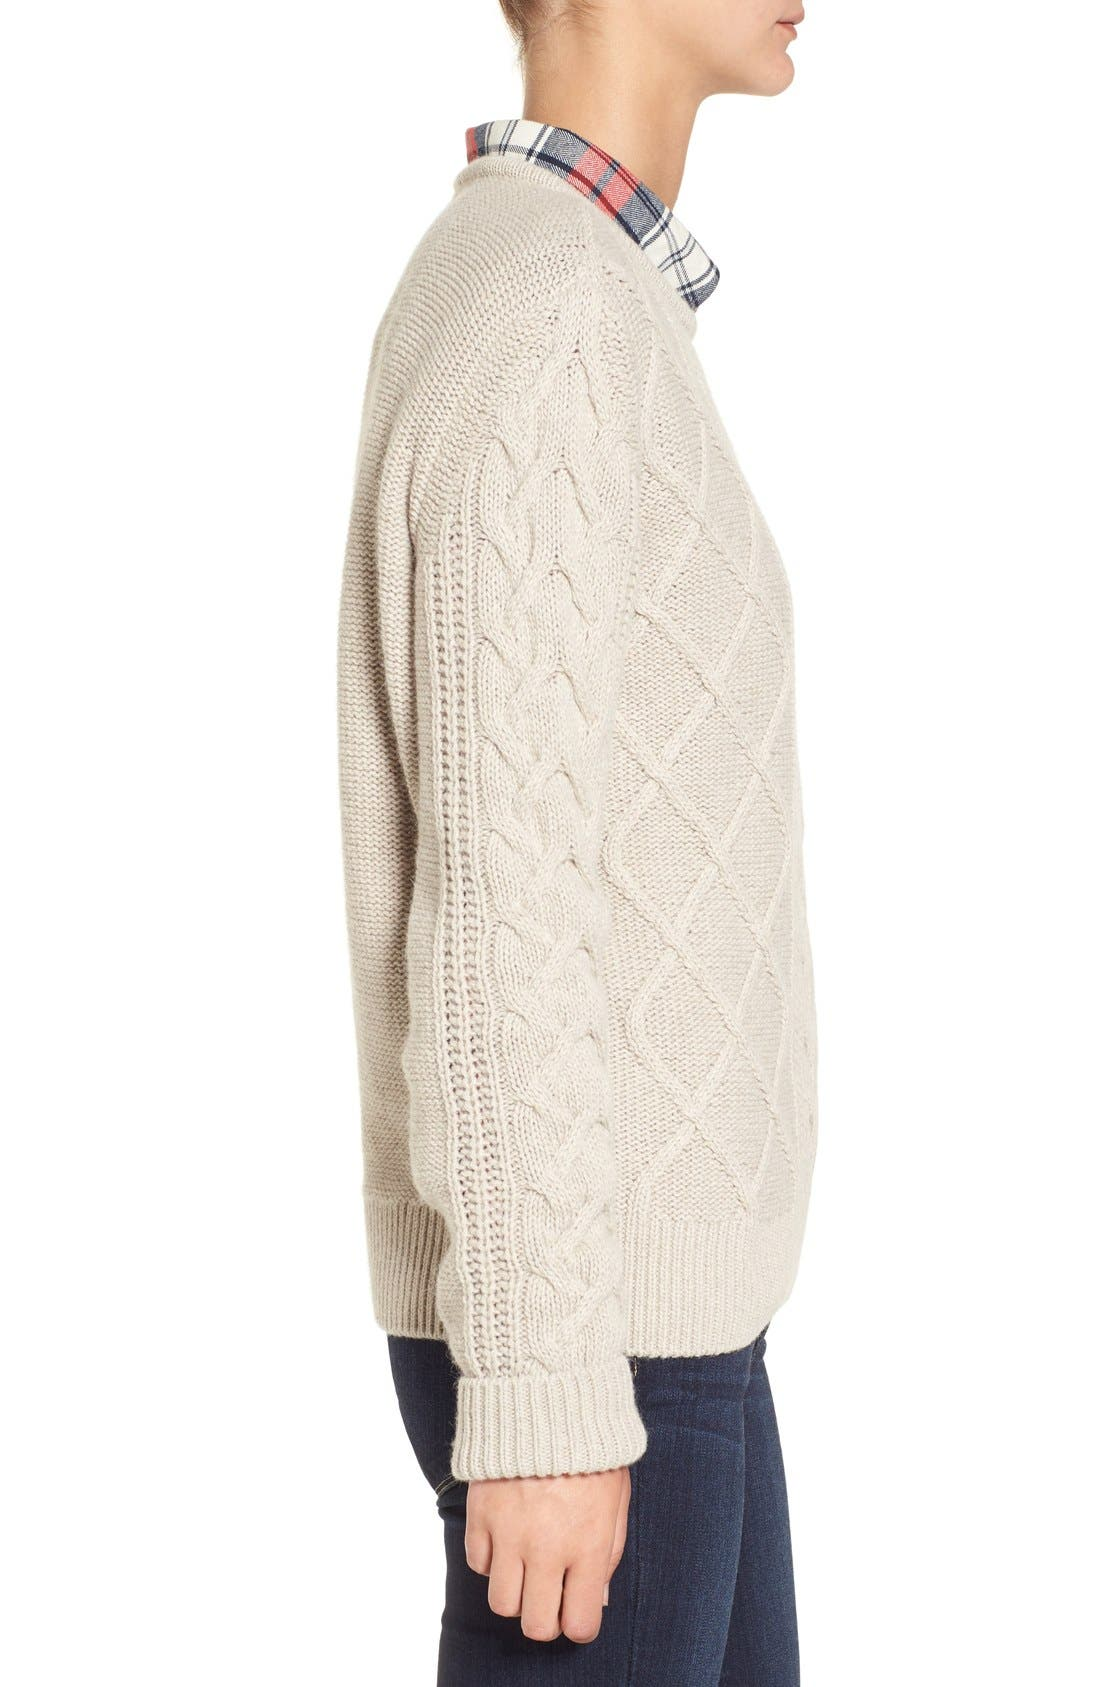 Alternate Image 3  - Barbour 'Tidewater' Cable Knit Crewneck Sweater